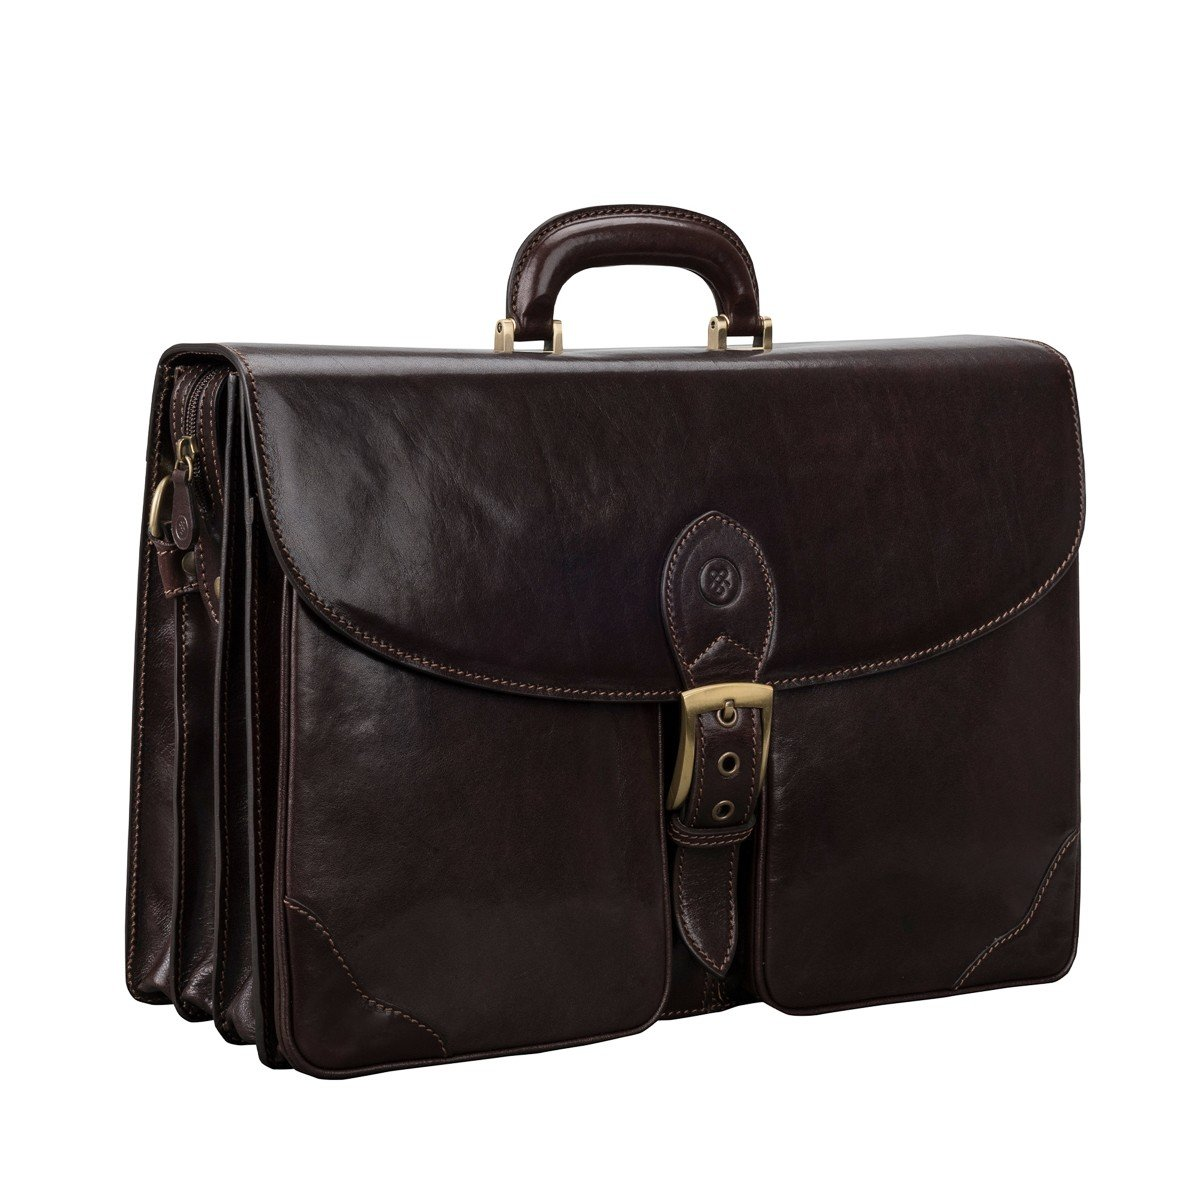 Maxwell Scott Luxury Leather Dark Brown Large Briefcase (The Tomacelli 3 section)